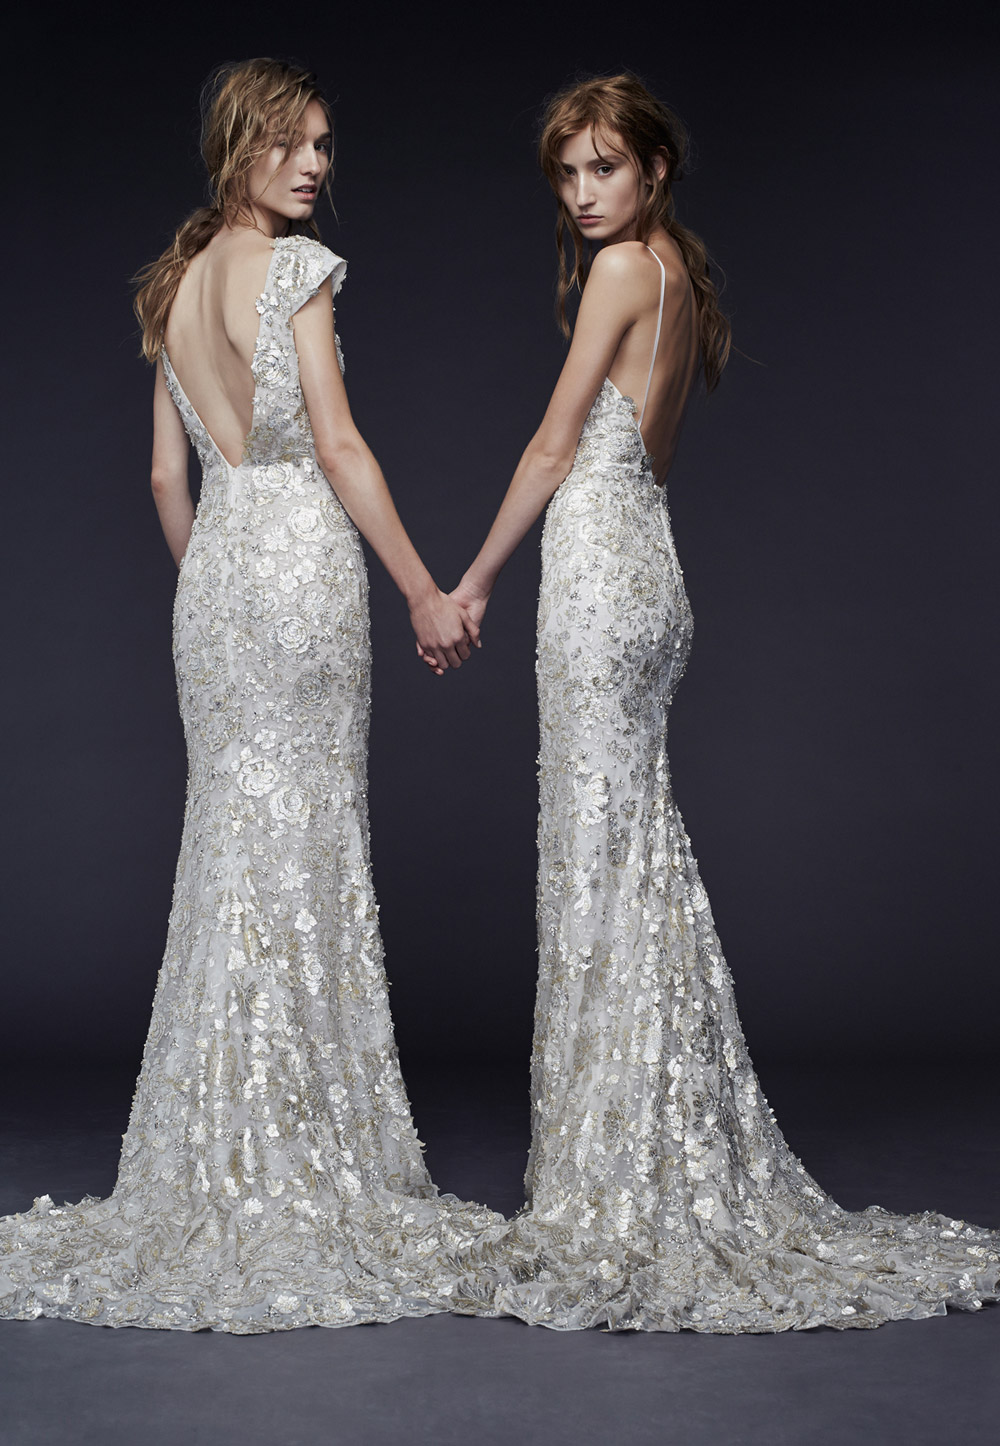 Priya and Pheobe – Vera Wang Fall 2015 Collection. www.theweddingnotebook.com